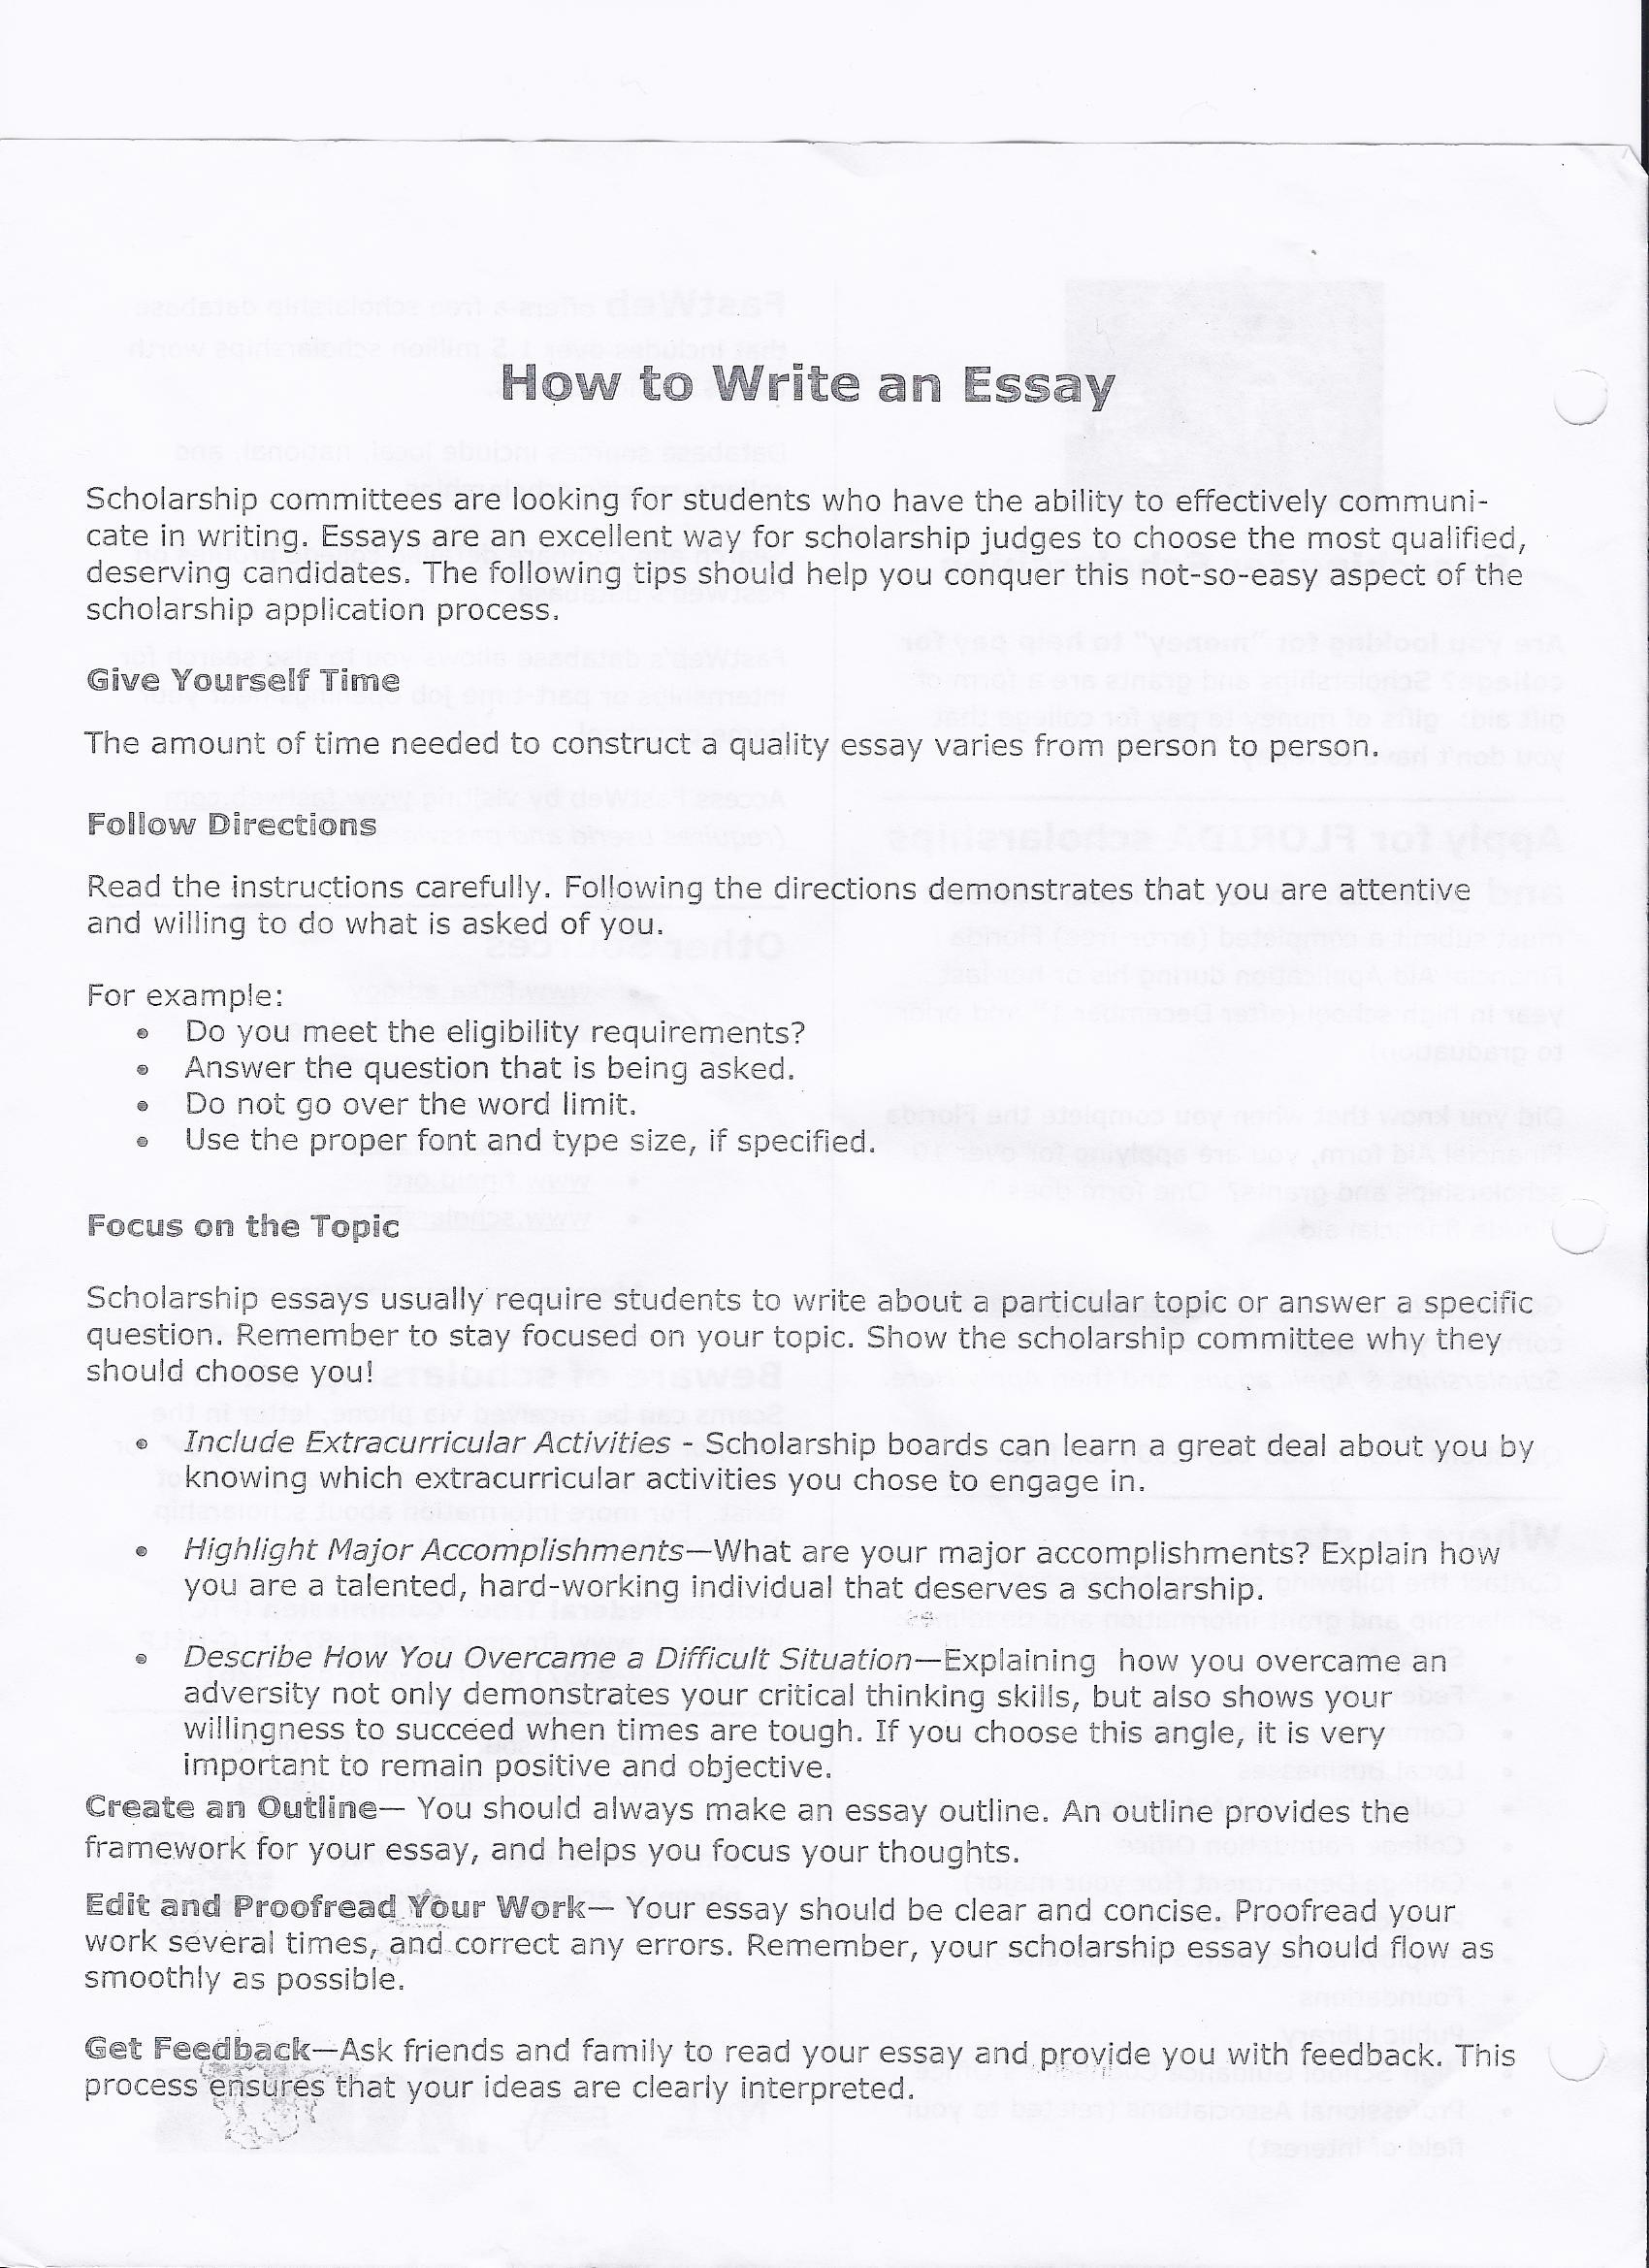 stitch in time saves nine essay top quality essay top quality  collage essay collage essay collage essay jonathon lay personal collage essaycollage essay buy key stage geography